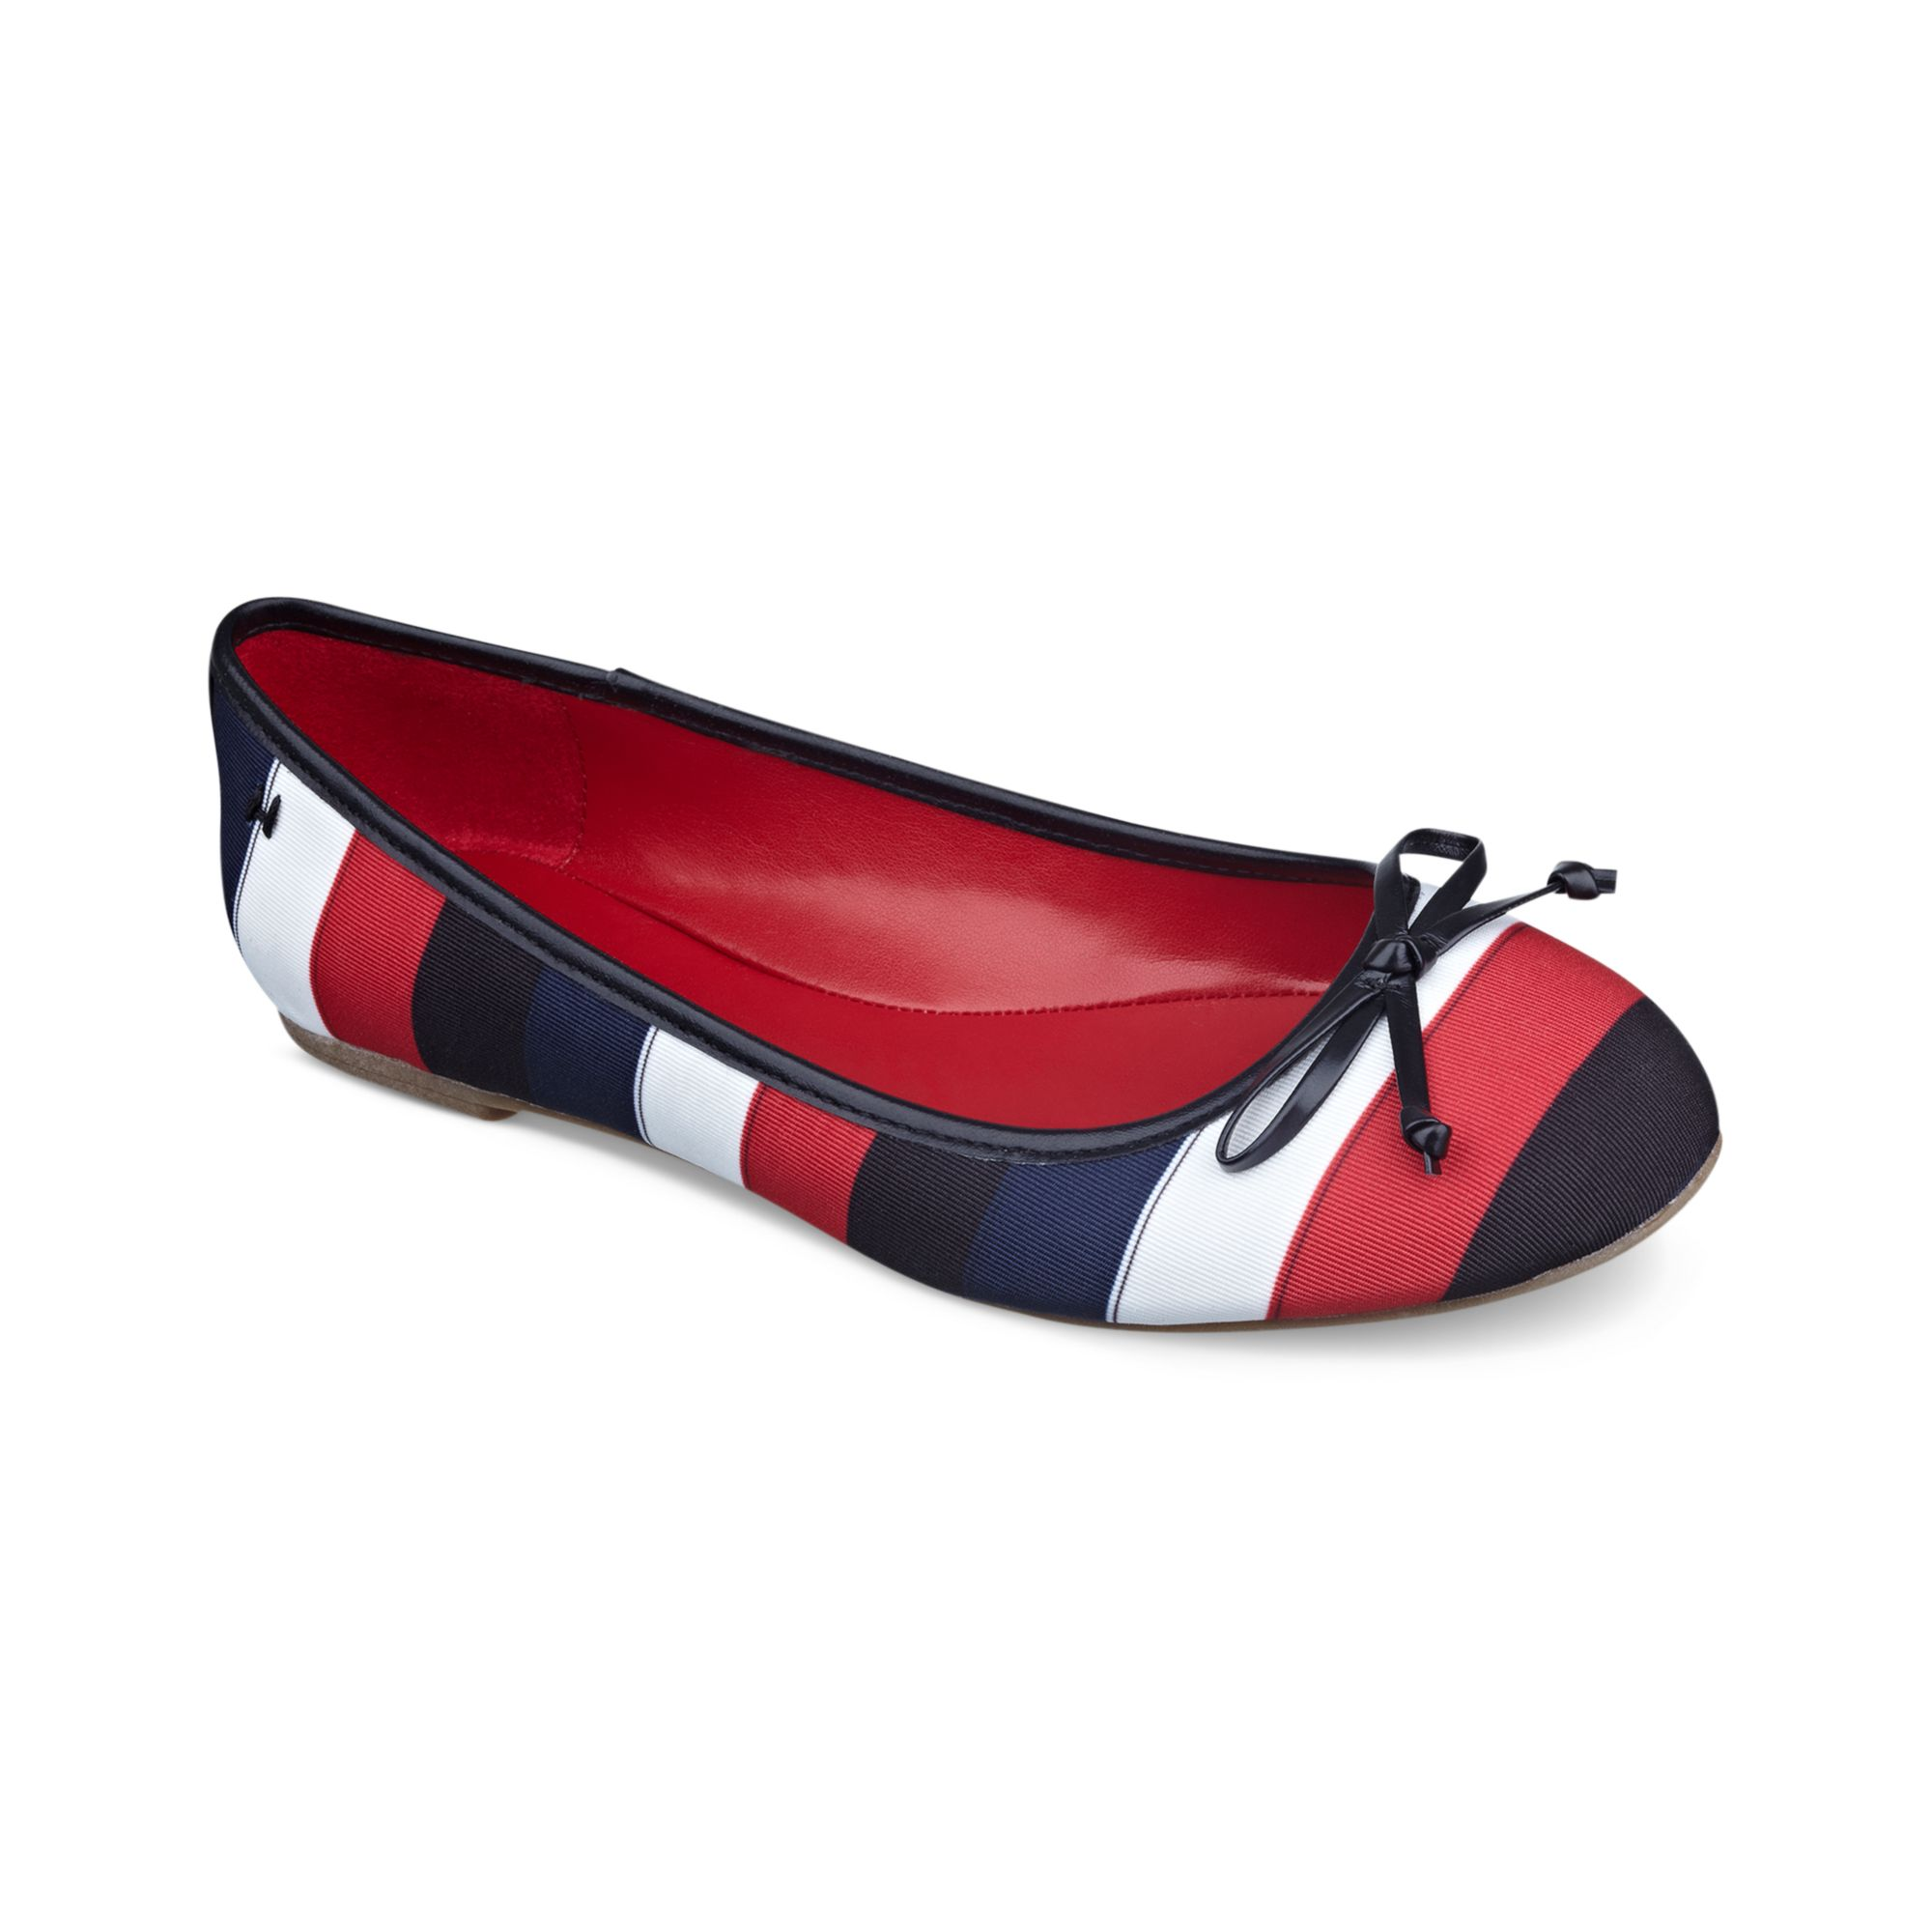 tommy hilfiger belisana ballet flats in multicolor black. Black Bedroom Furniture Sets. Home Design Ideas